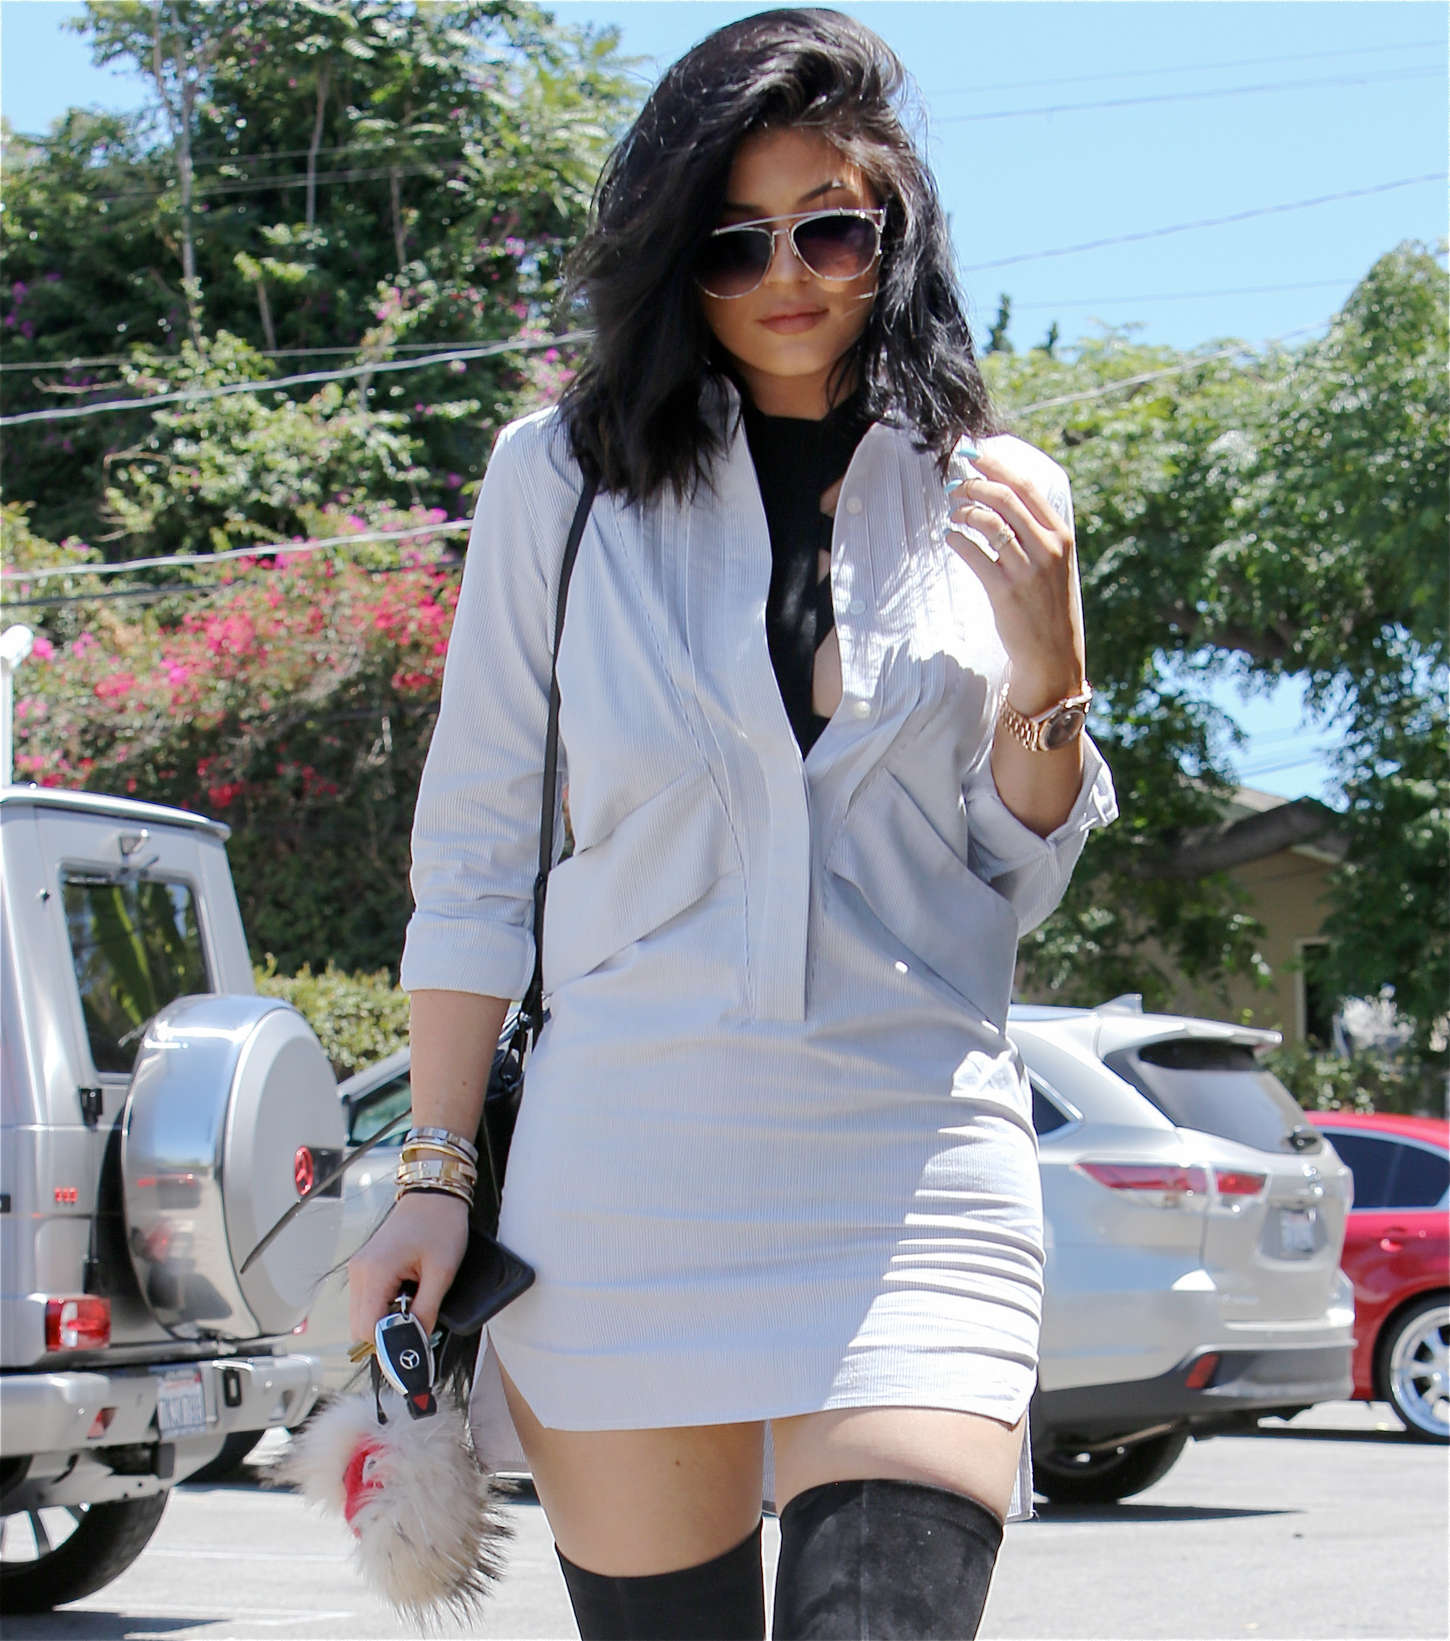 Kylie Jenner in Mini Dress Out in LA